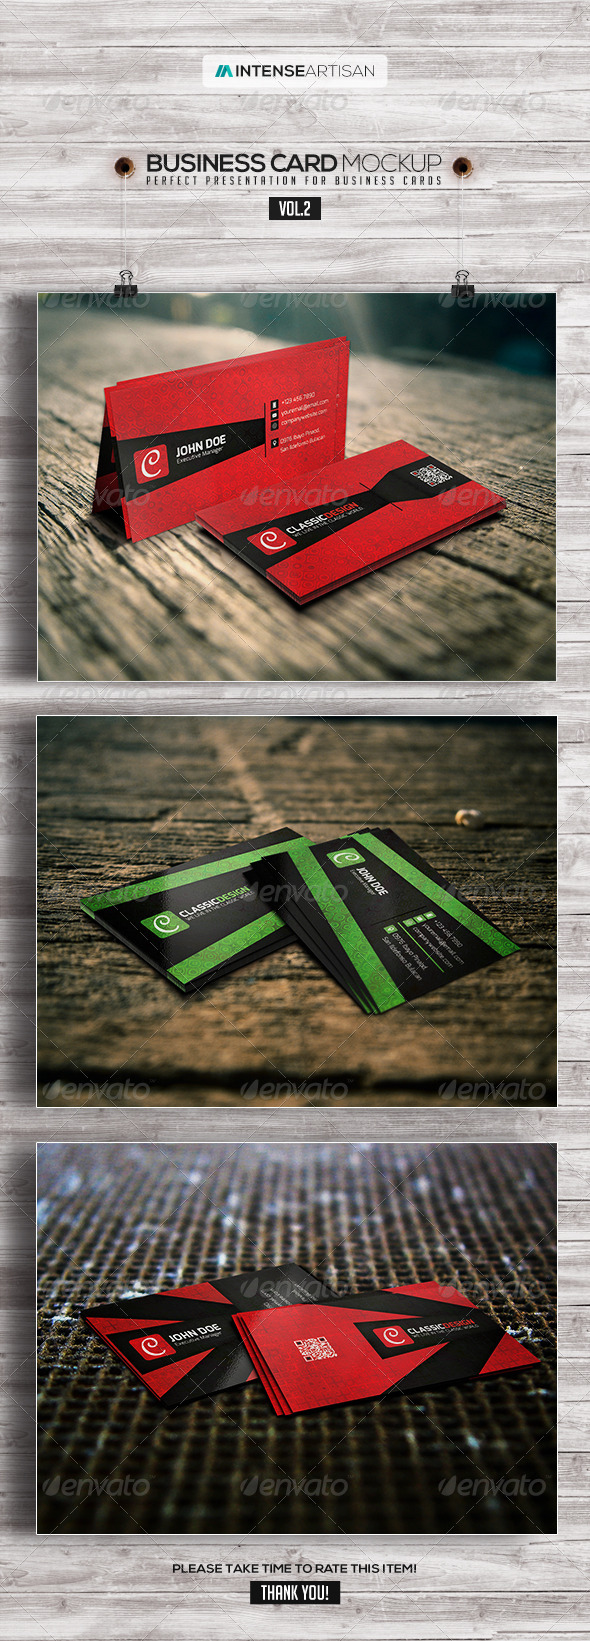 Business Card Mockup V.2 - Business Cards Print